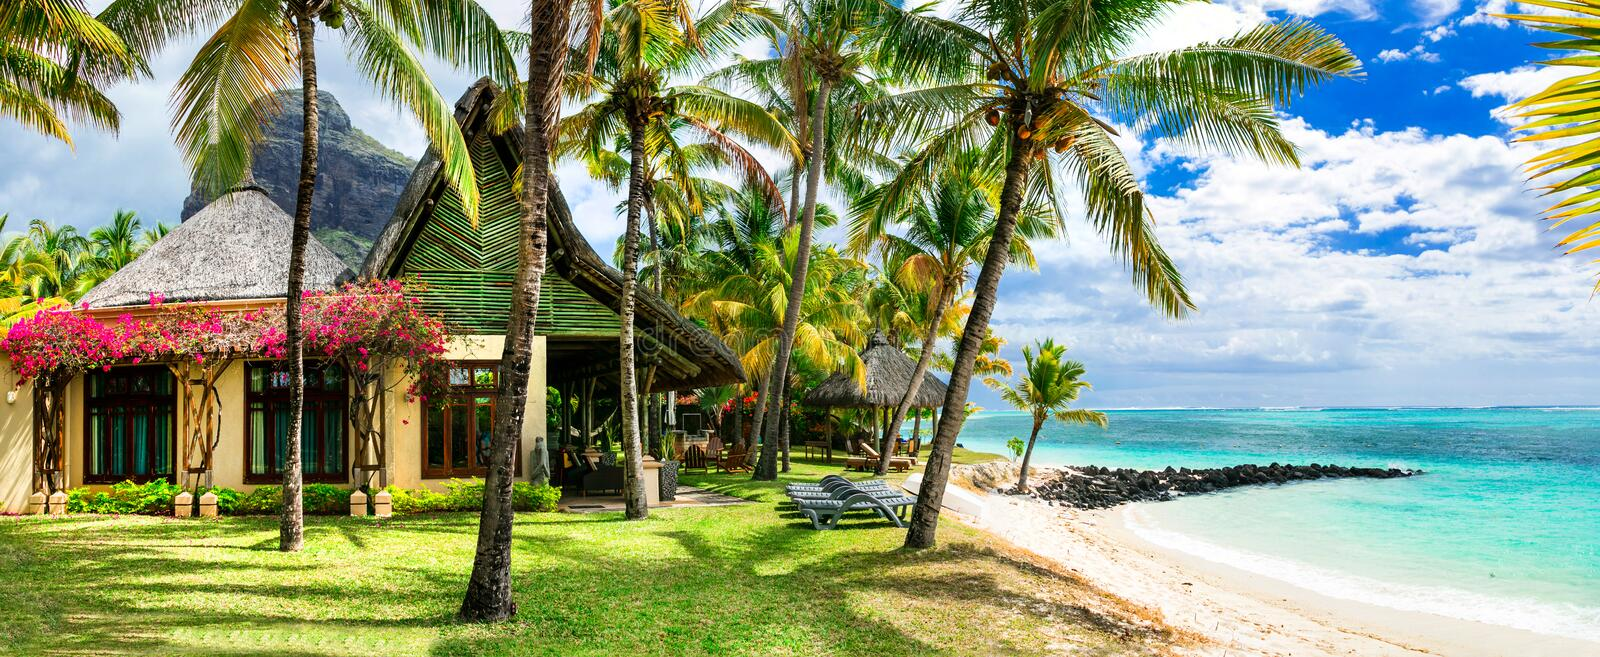 Luxury tropical vacation. Mauritius island royalty free stock photos